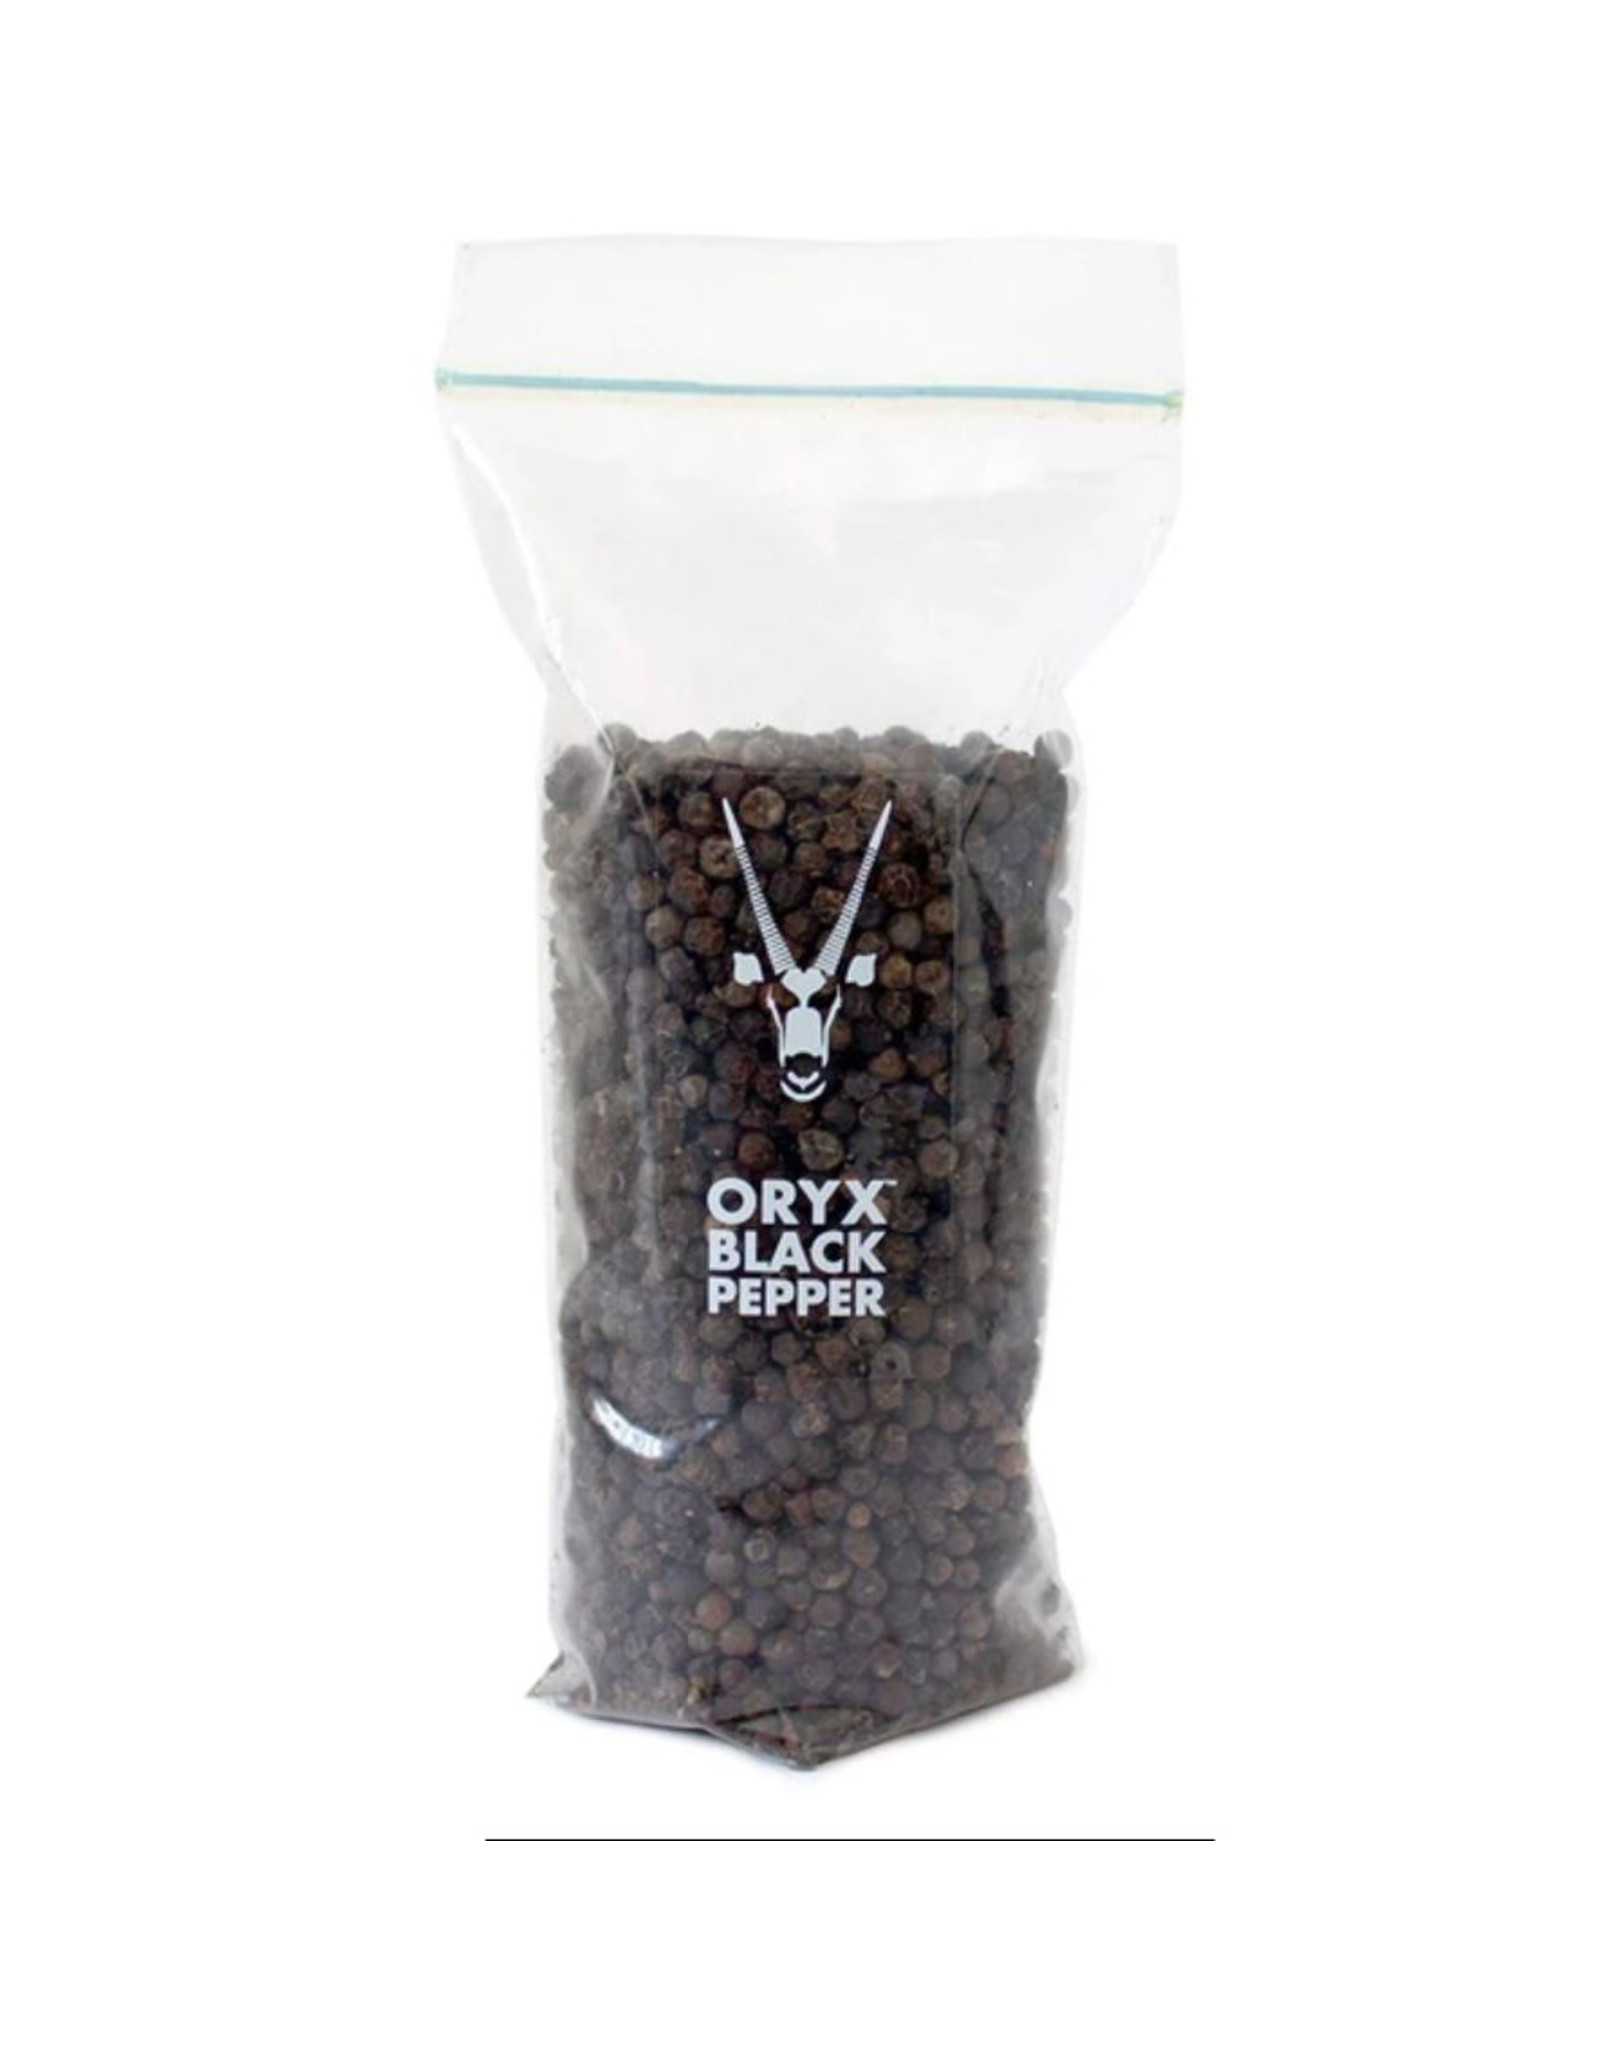 Oryx Pepper refill box 1 kilo